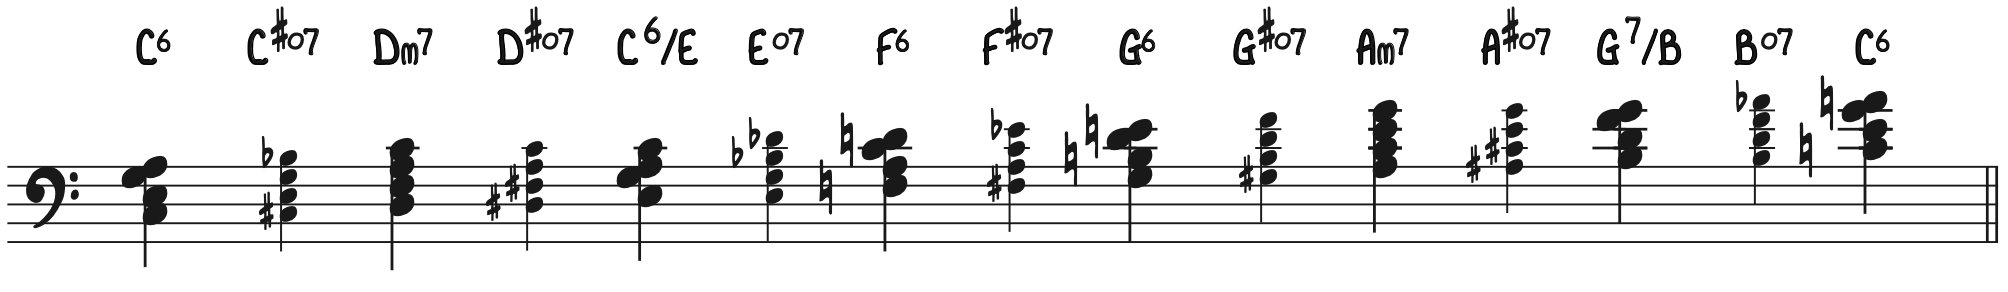 Ascending Progression with Chromatic Diminished Chords for stride piano exercise